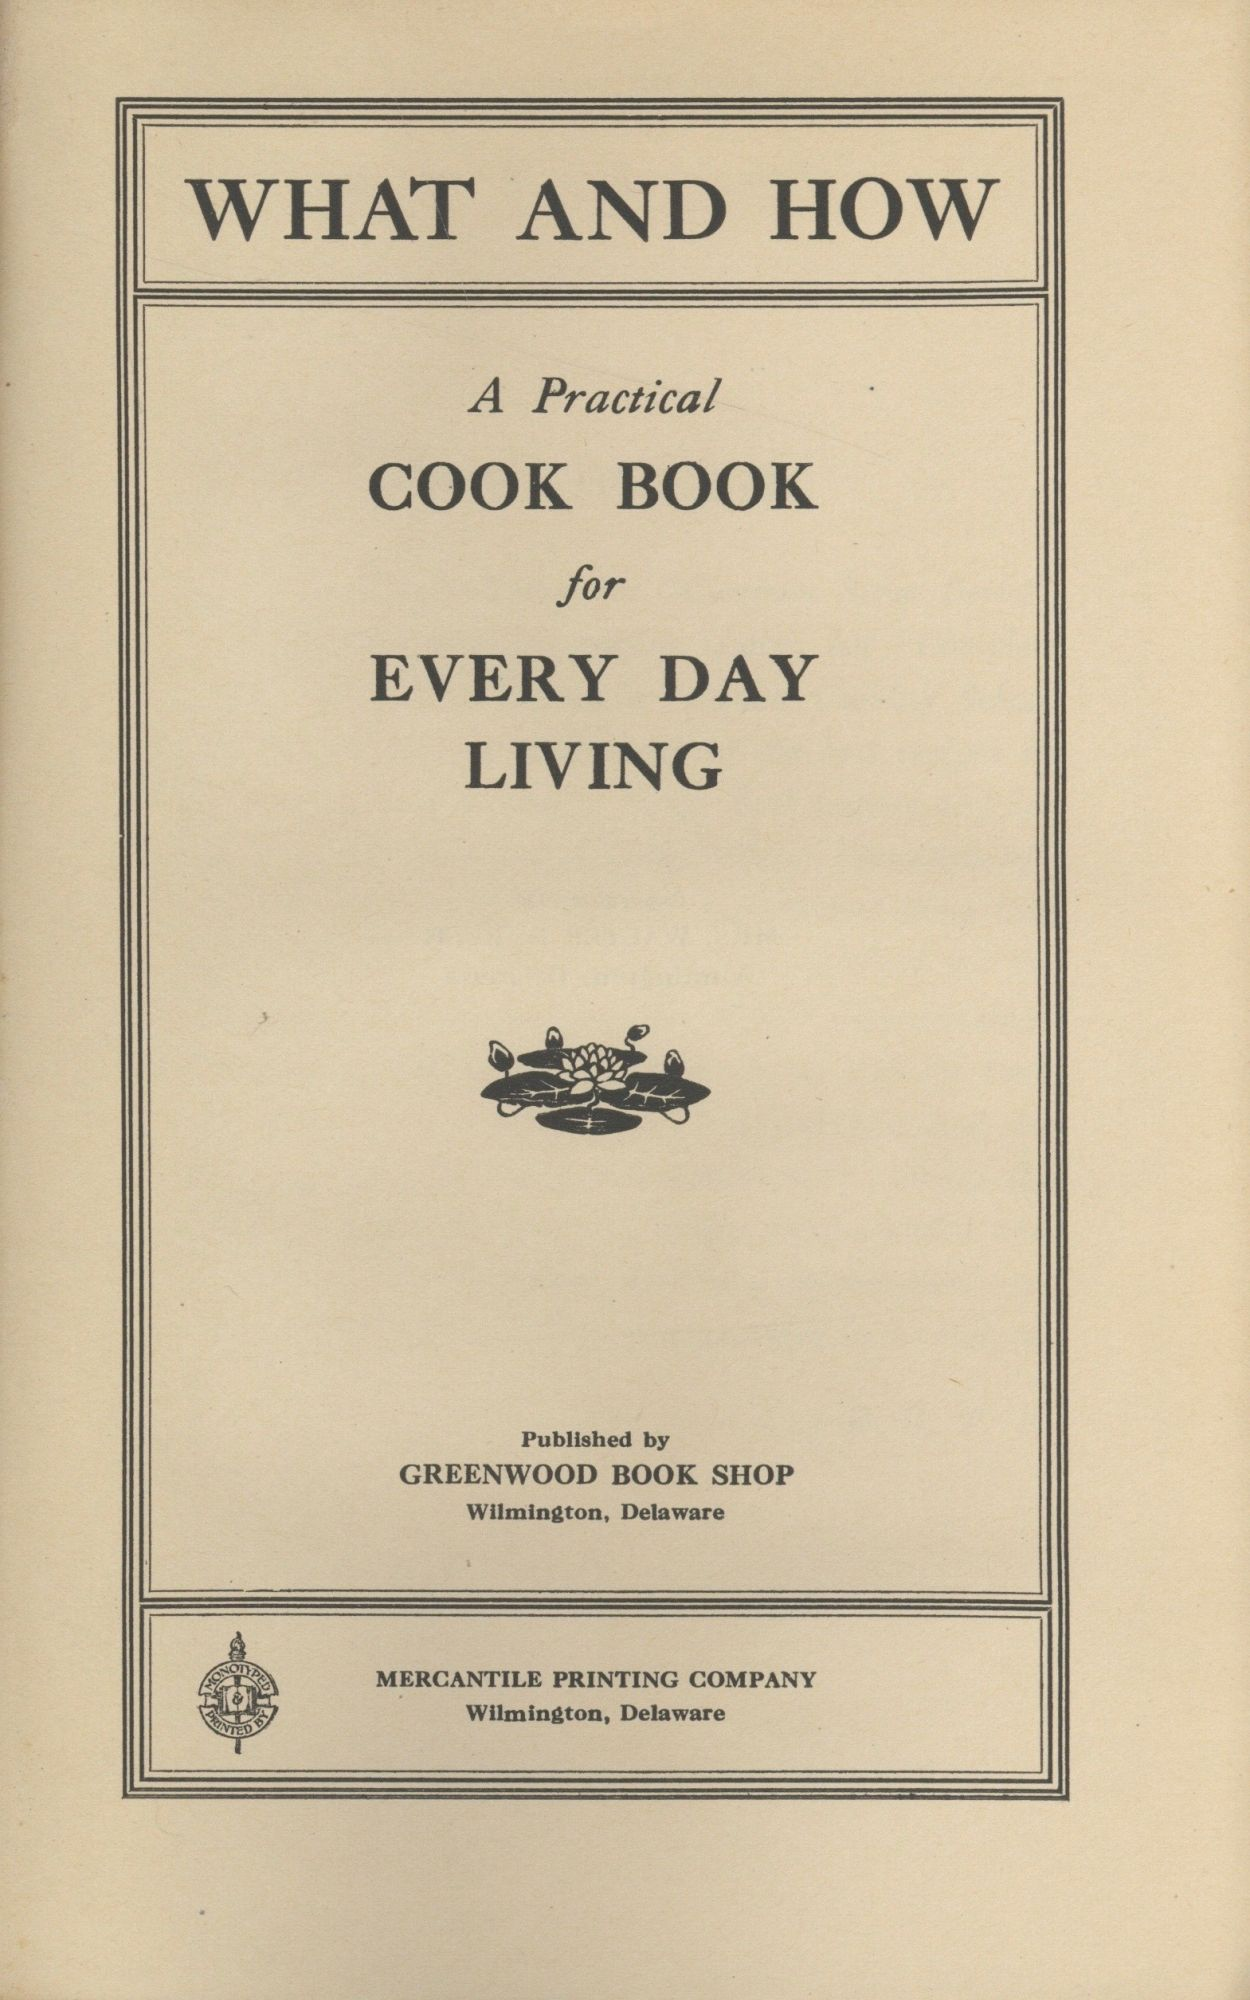 What and how: a practical cook book for every day living. [By] Mrs. Walter D. Bush. Mrs. Walter D. Bush, Rebecca Gibbons Tatnall Bush.